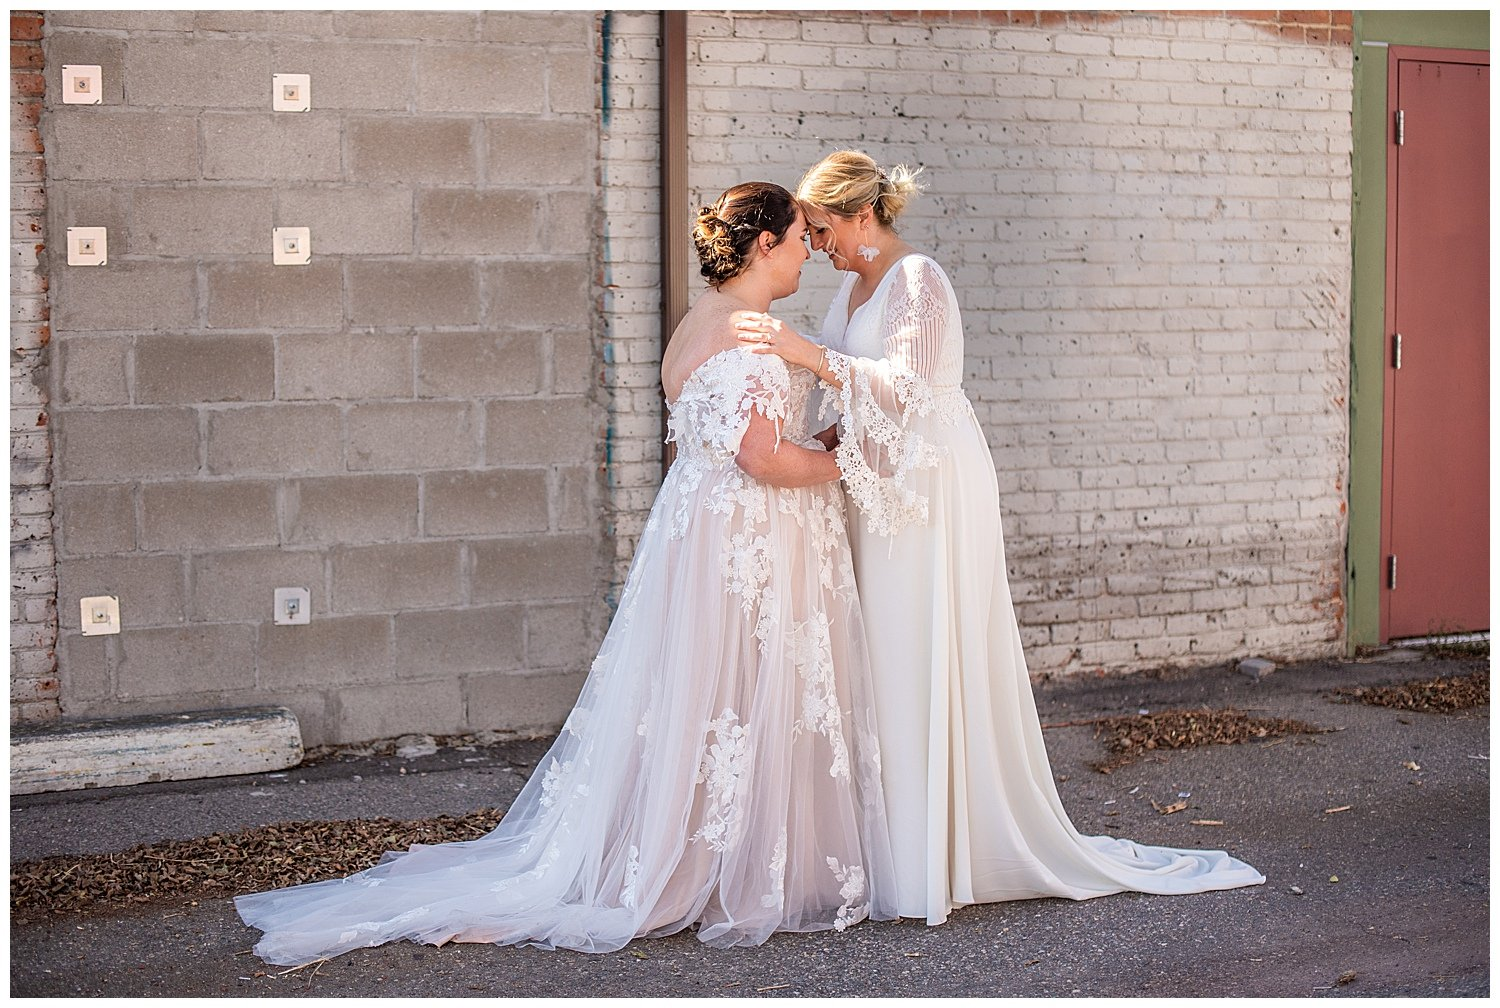 lgbtq wedding photographer denver